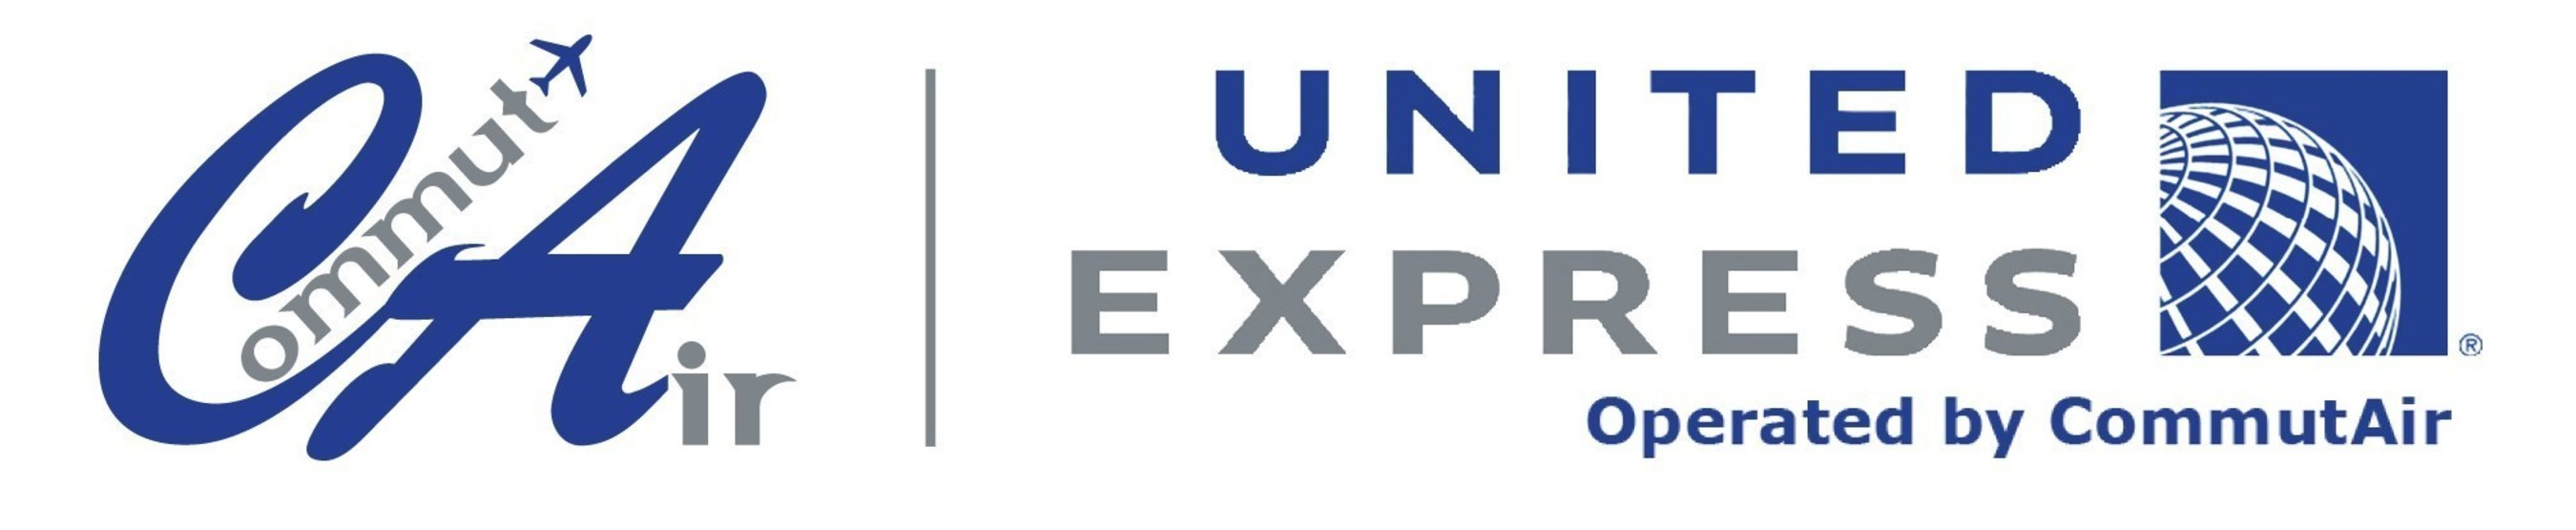 Commutair To Grow And Add Jets Under United Express Agreement